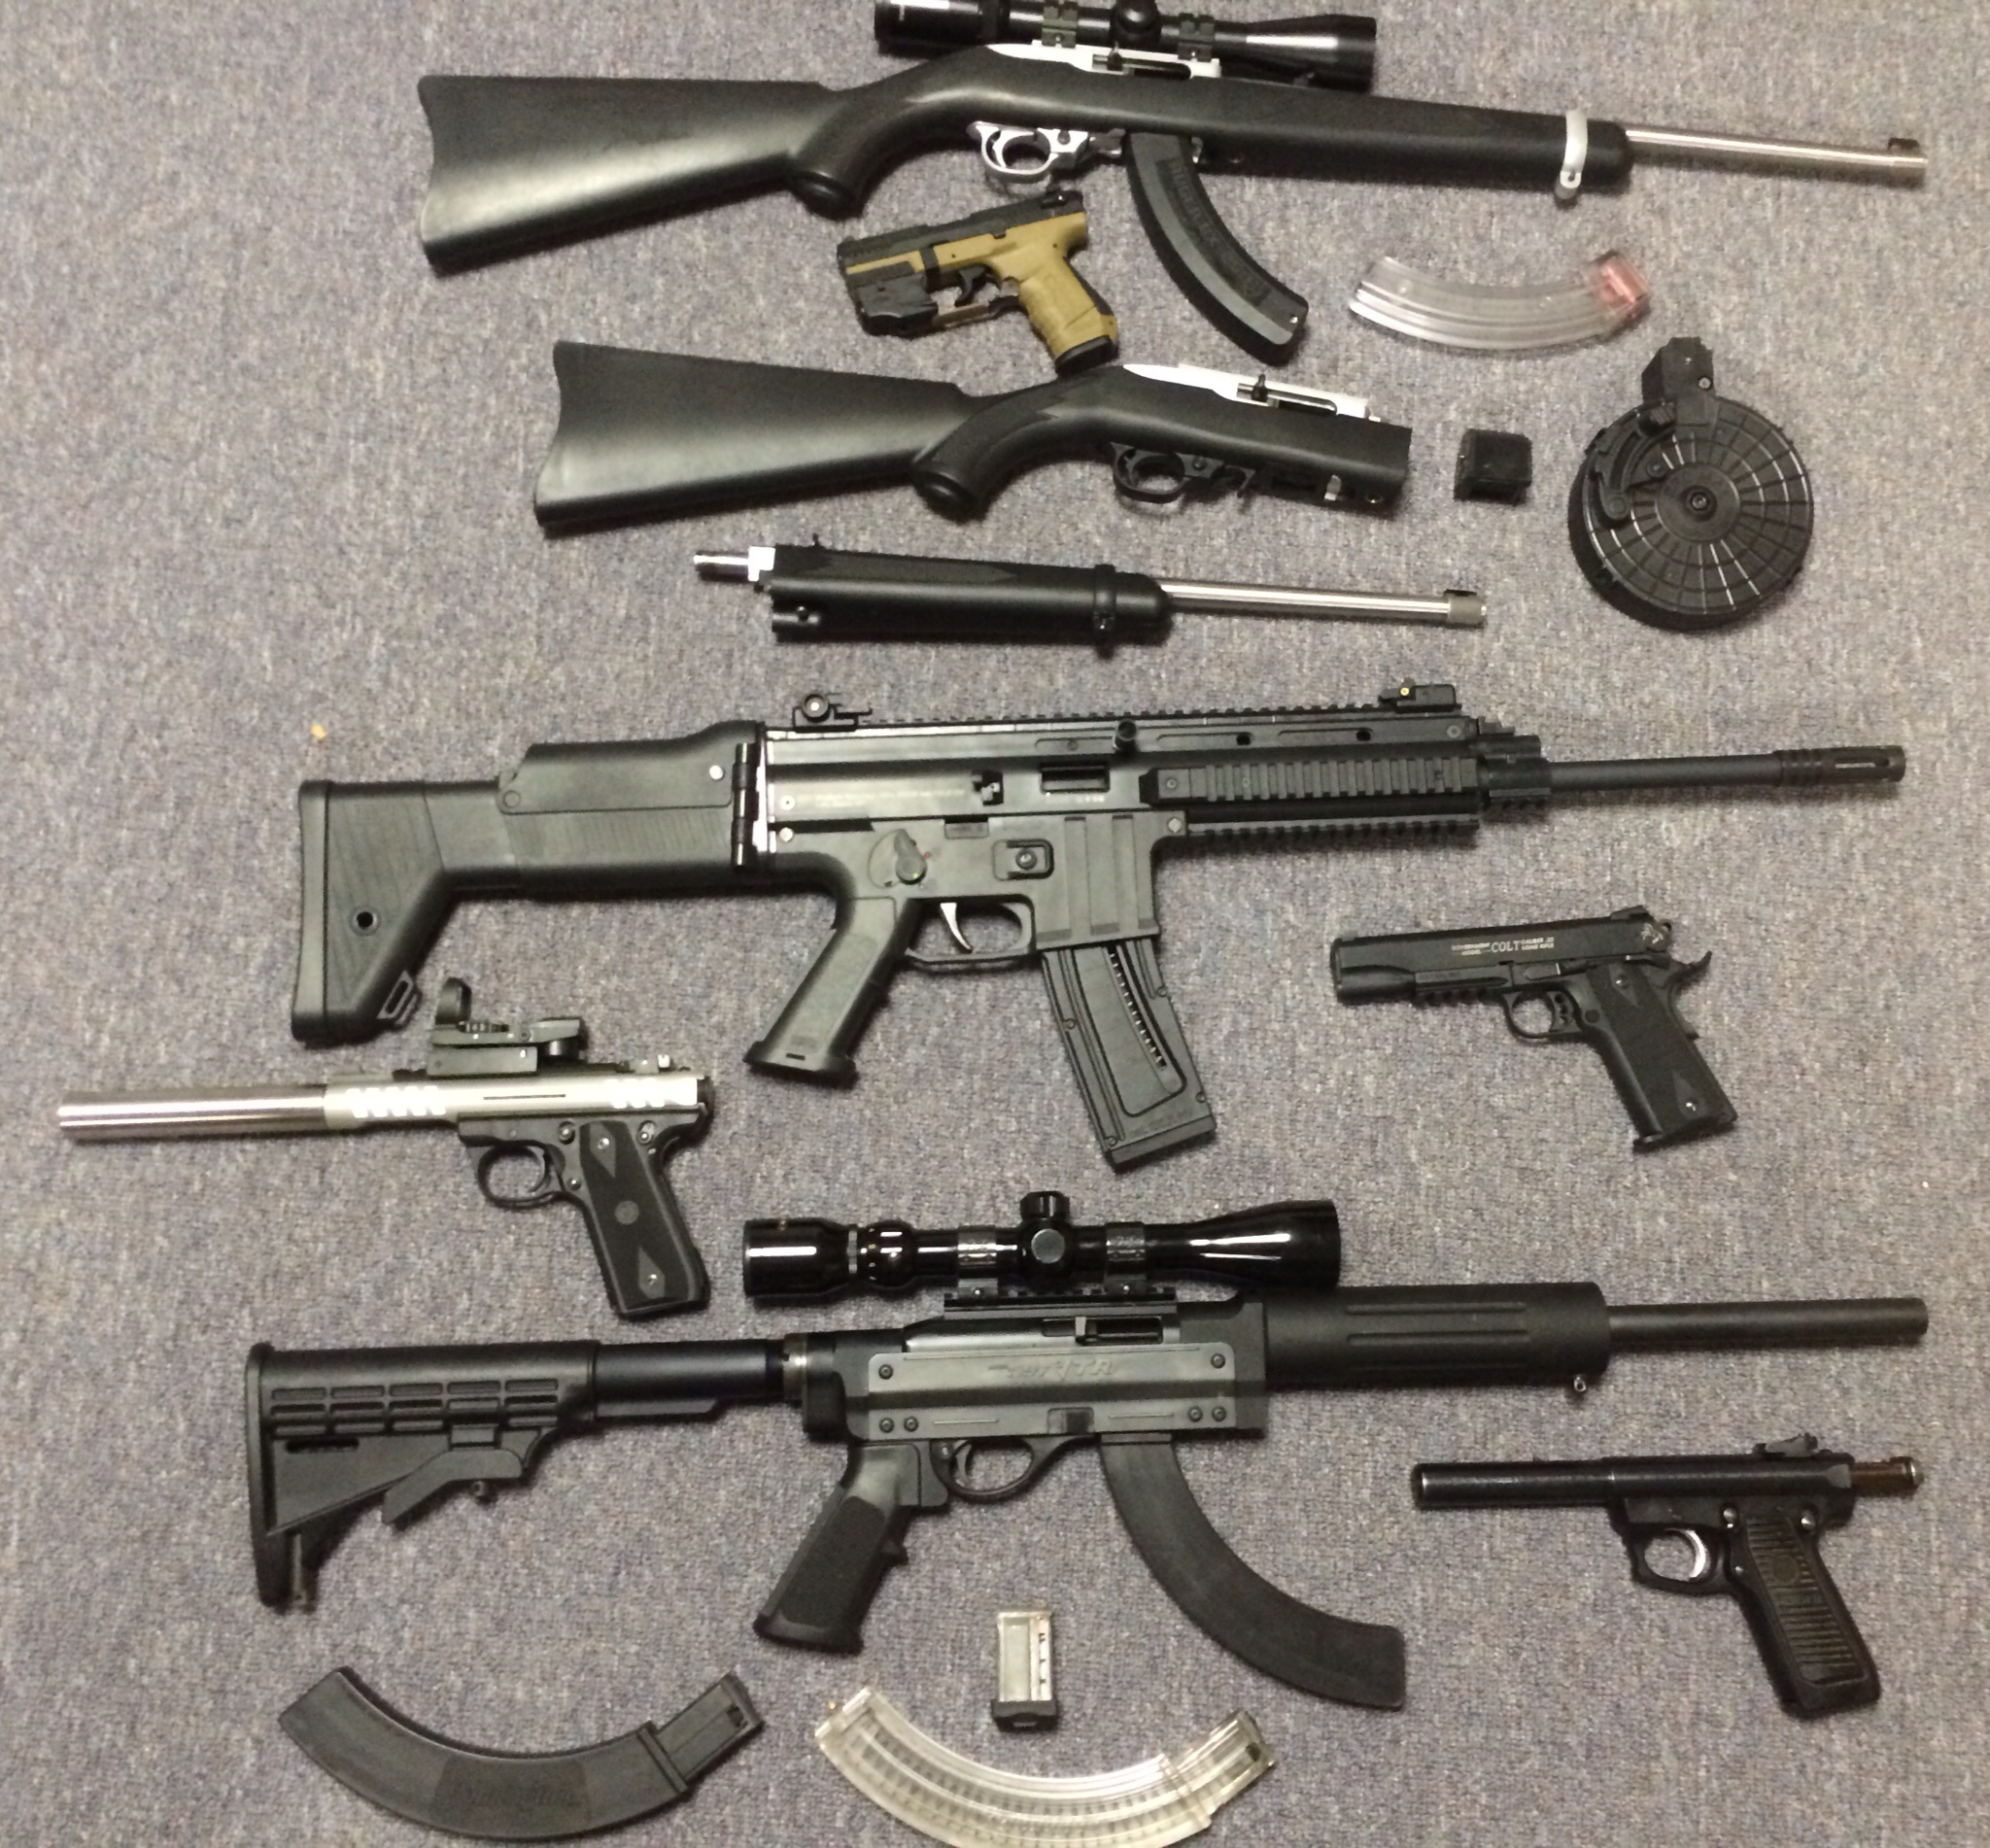 22lr Collection Addiction The Firearms Forum The